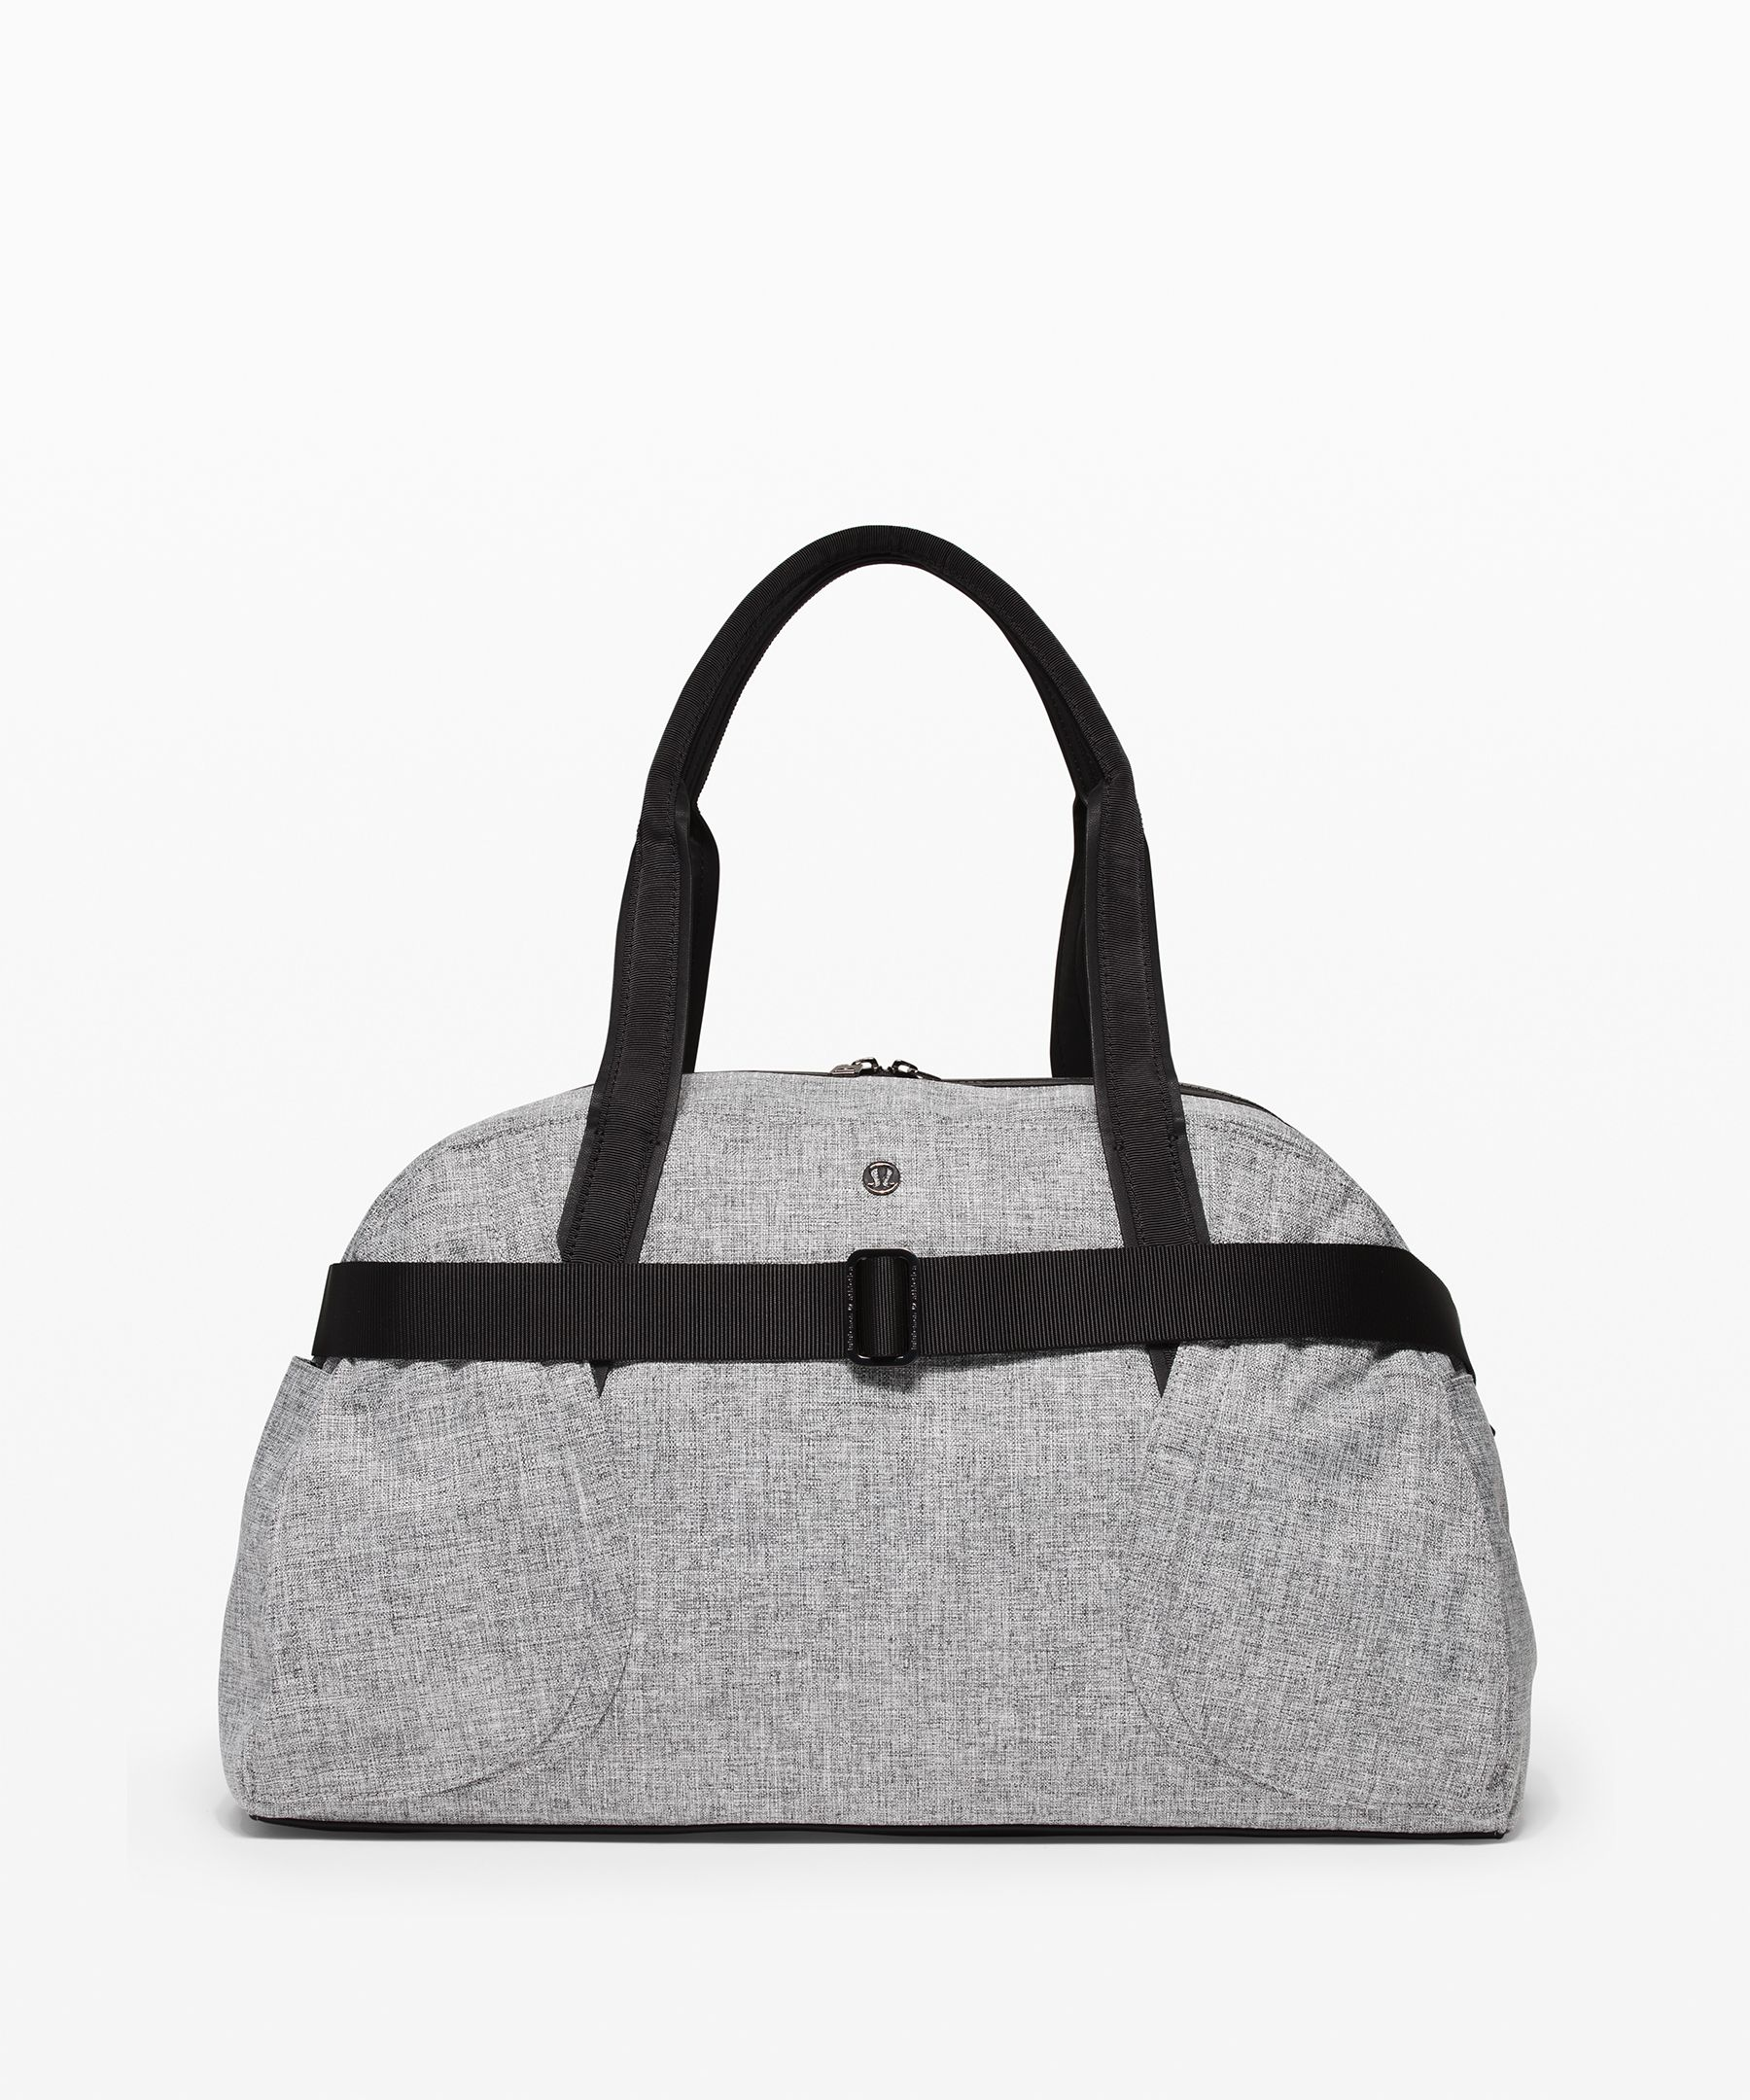 Out Of Range Duffel 33 L New by Lululemon